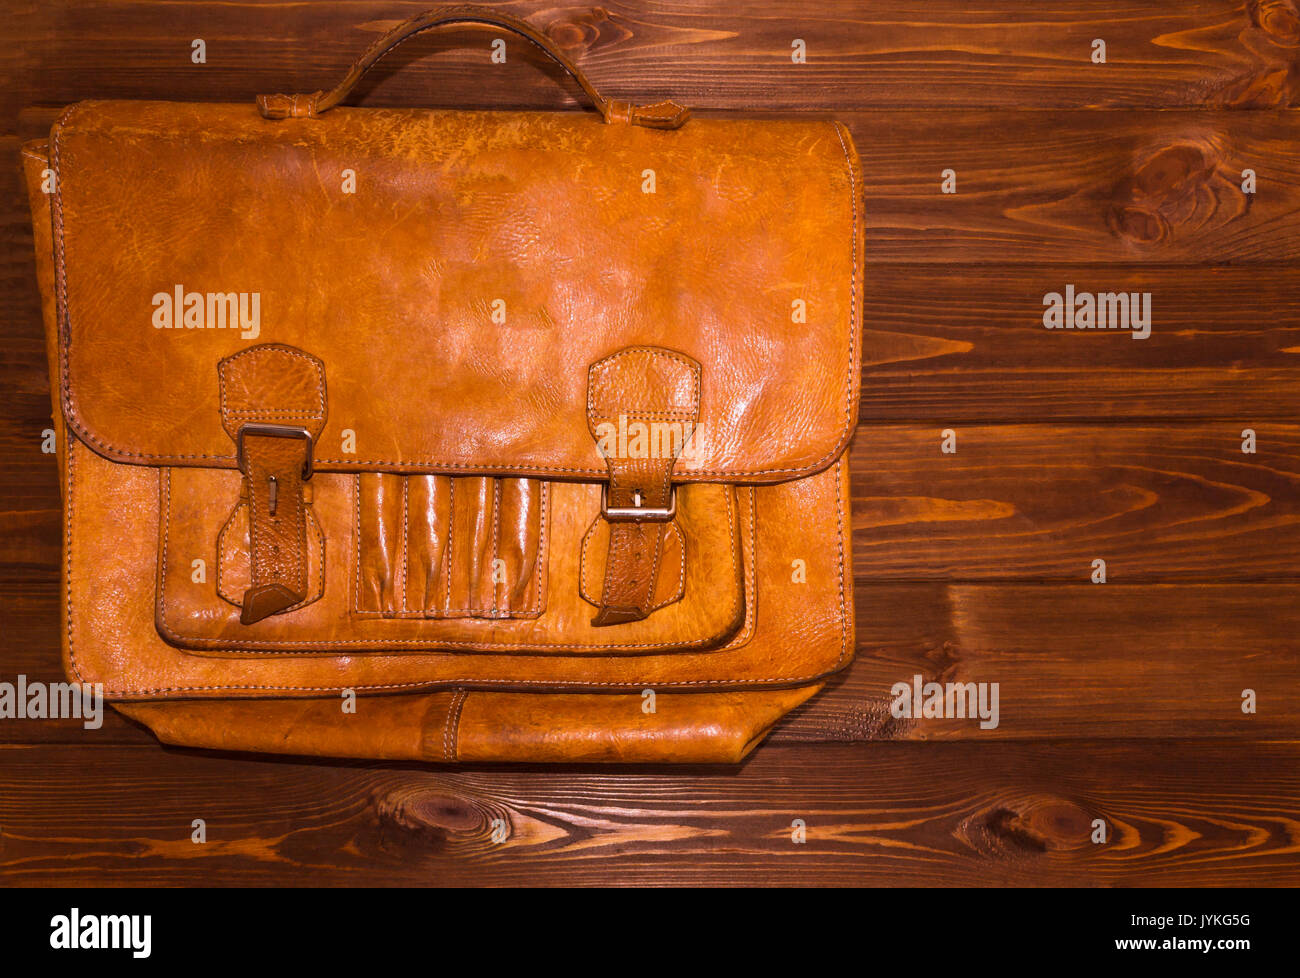 Old leather briefcase on wooden background - Stock Image